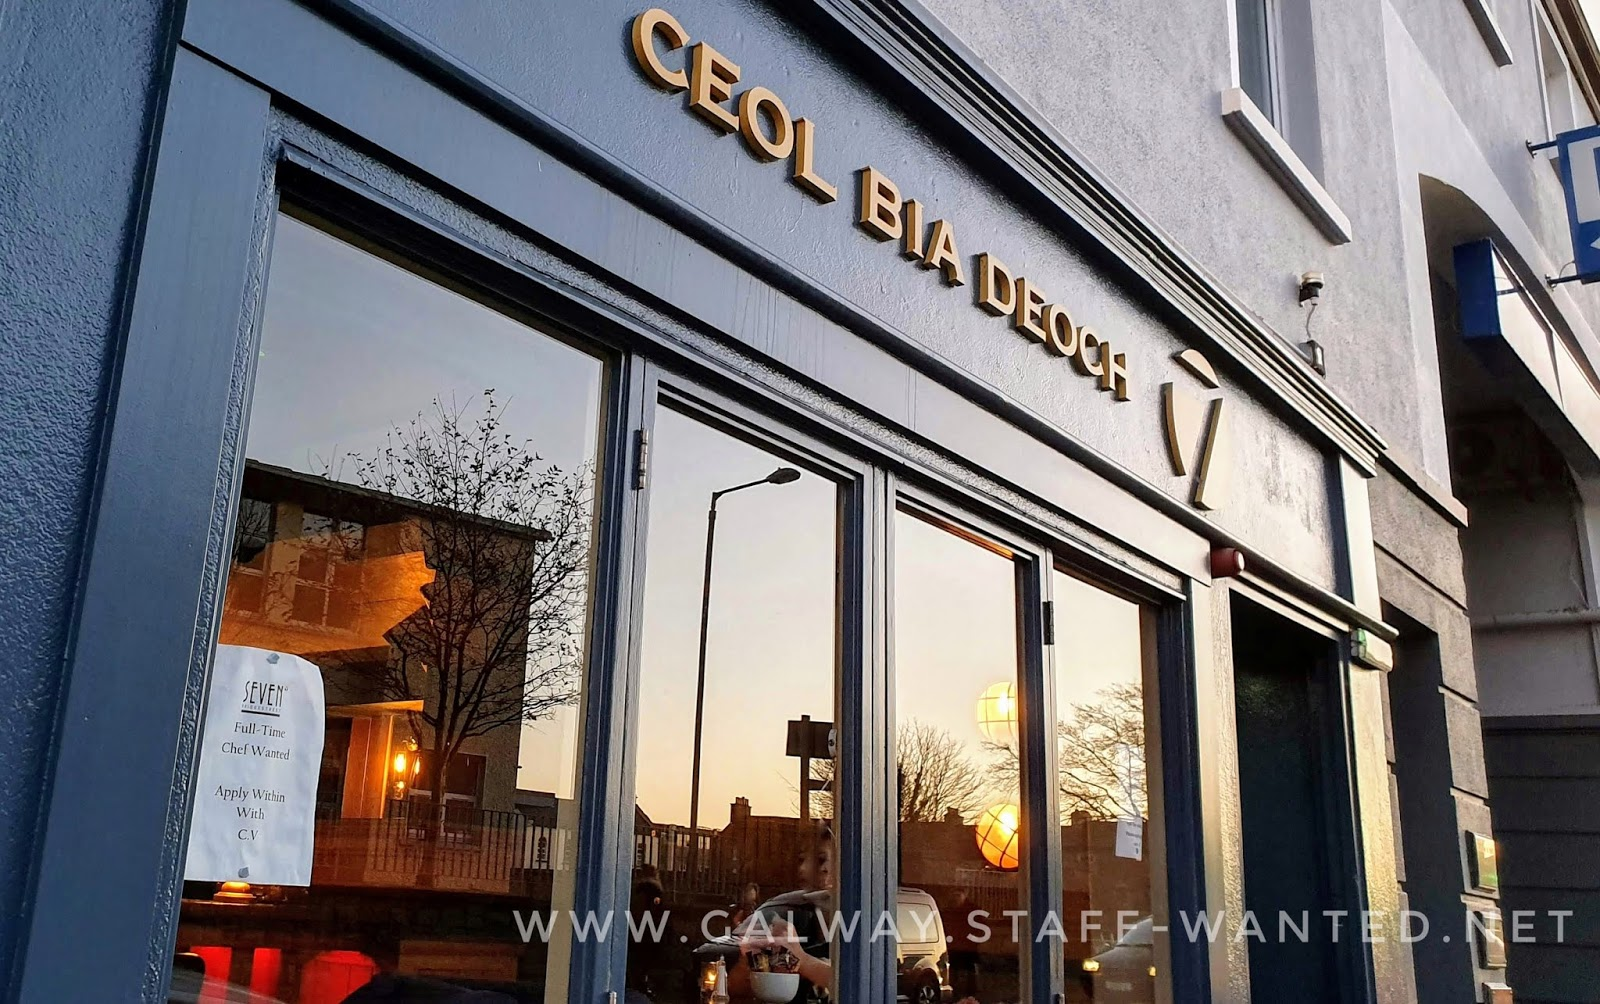 Multi-story primary school building and leafless tree reflected in a large plate glass window at sunset - Irish pub with signs saying ceol, bia,deoch (music, food, dance - modern dance / disco, not traditional)